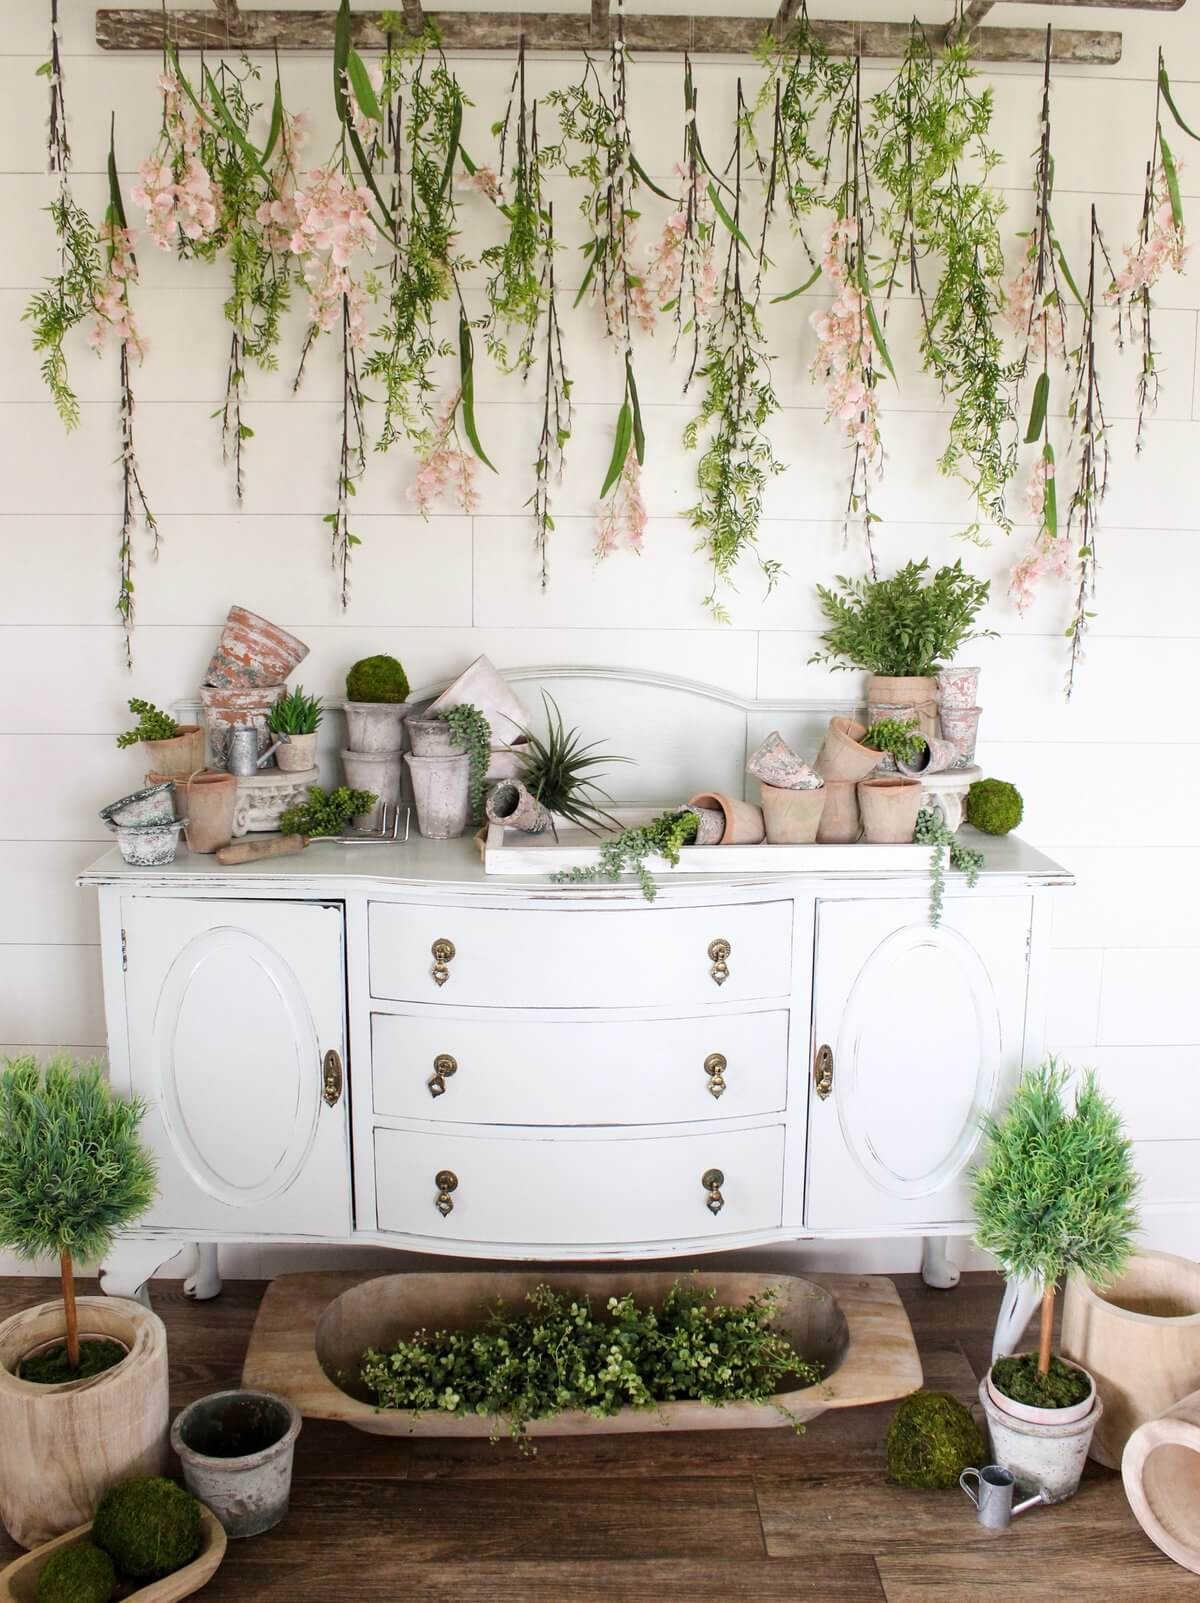 Moss and Vine Hanging and Planter Decor